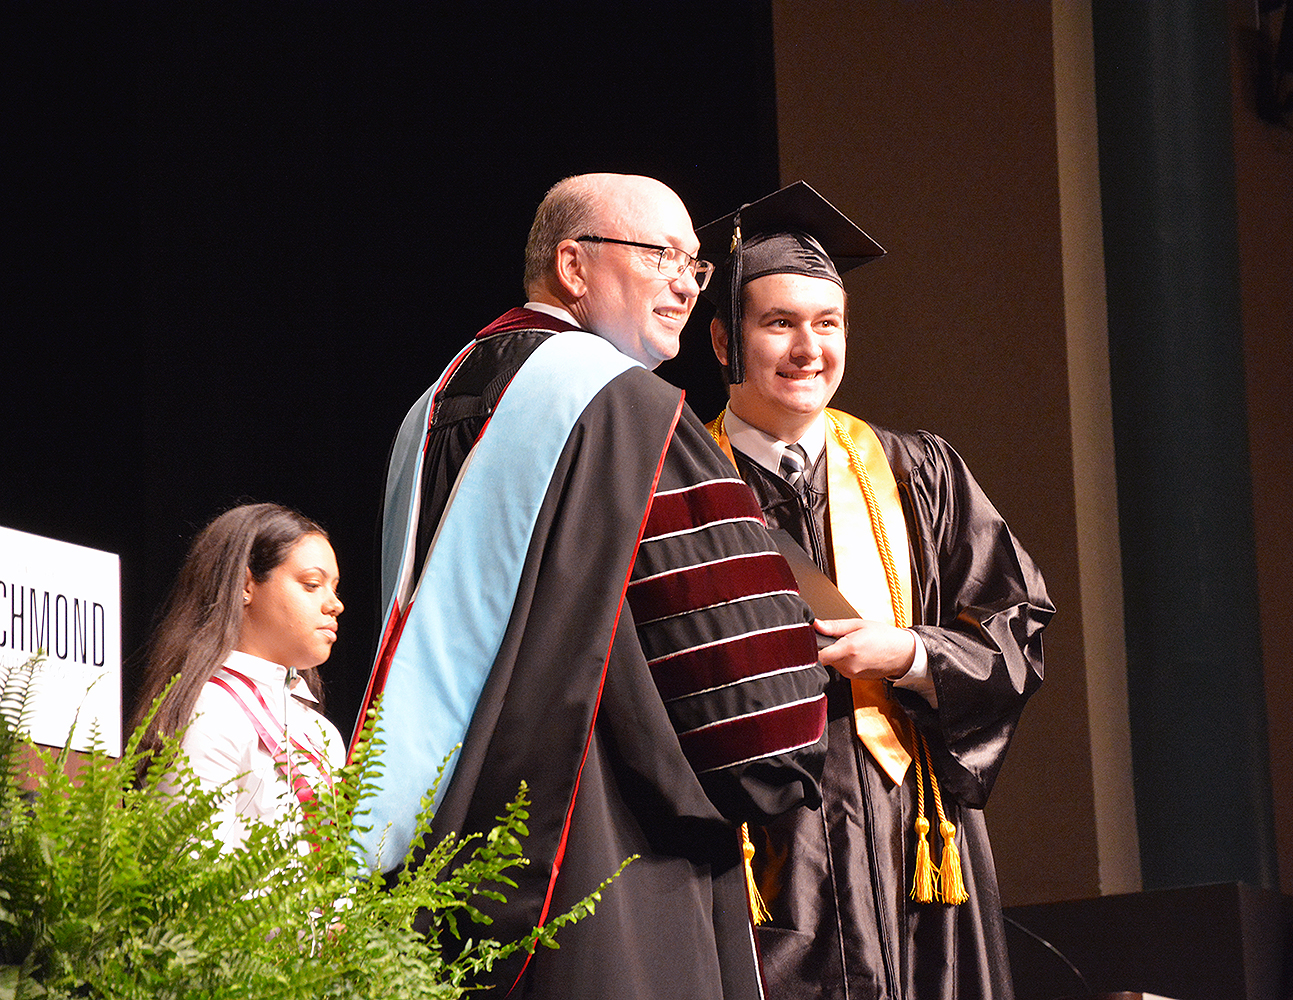 Graduate receives diploma from College President during graduation